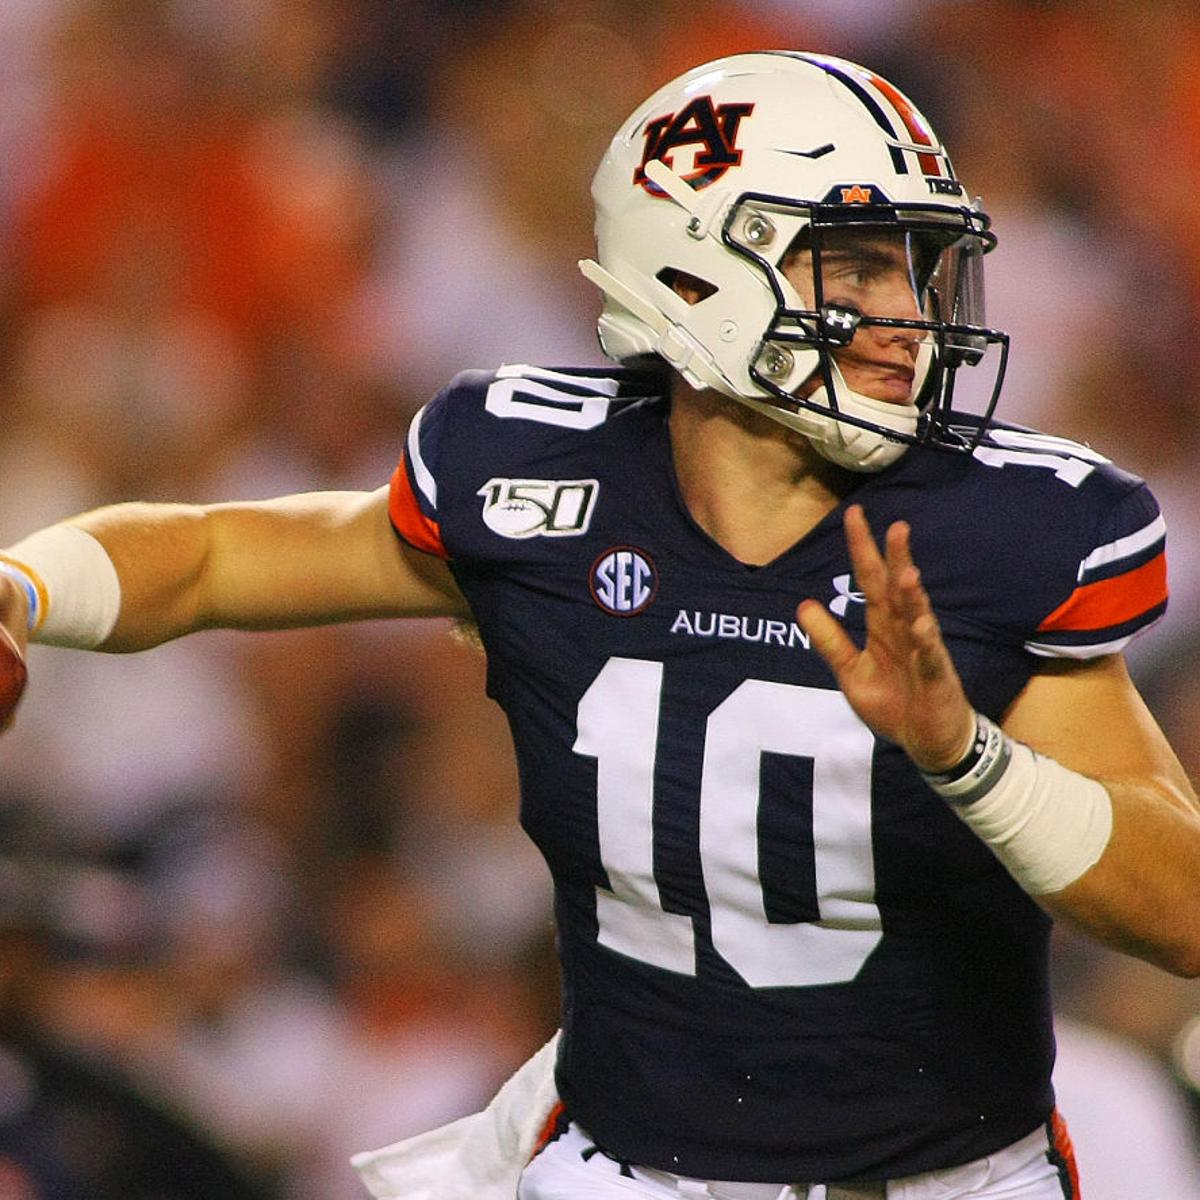 COLUMN: Slow starts will bite Auburn if allowed to continue